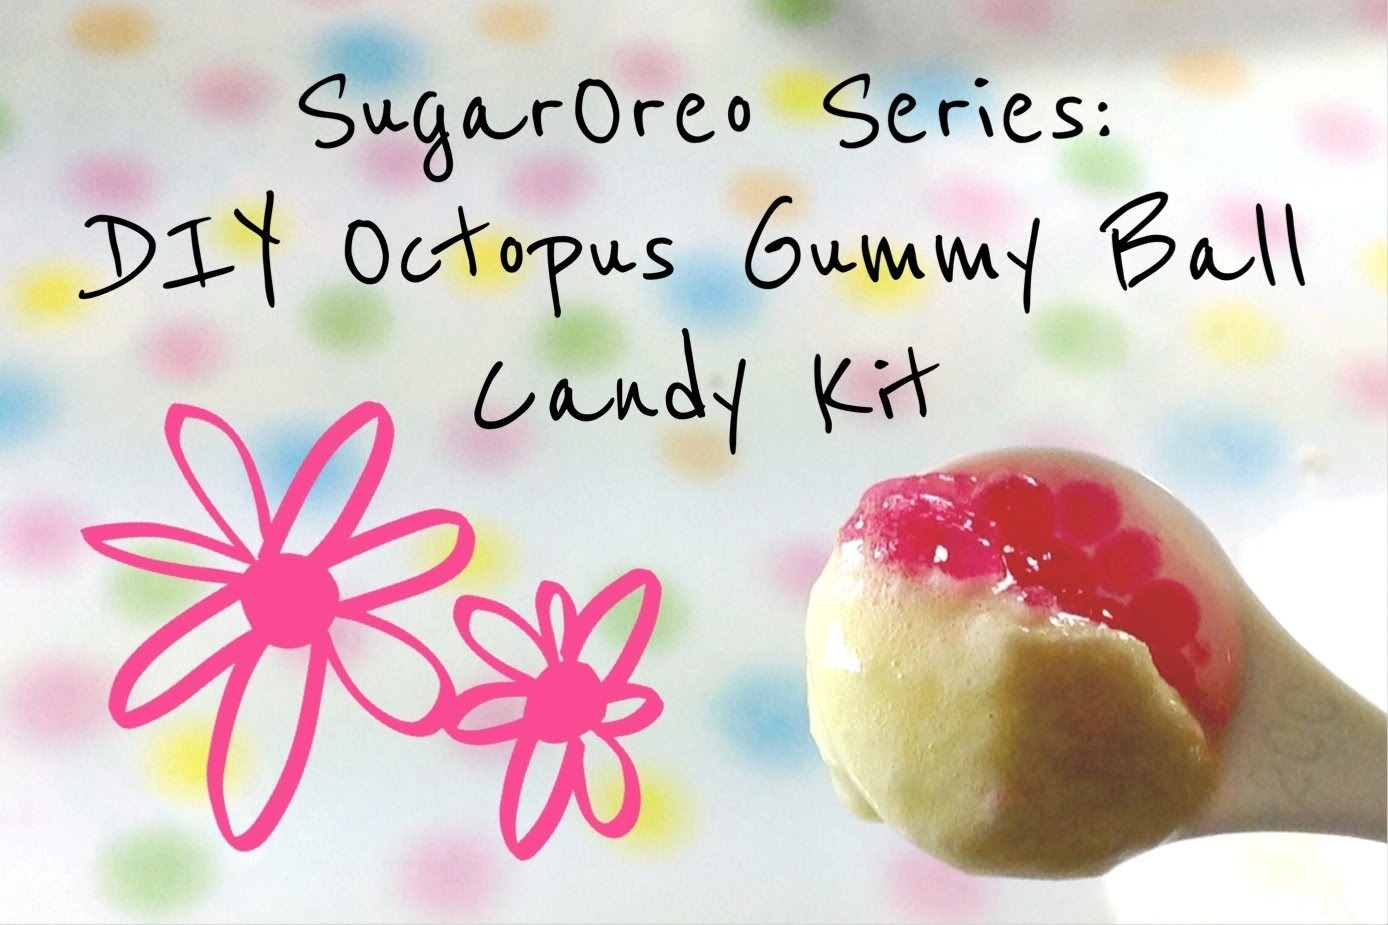 SugarOreo Series: DIY Octopus Gummy Ball Candy Kit